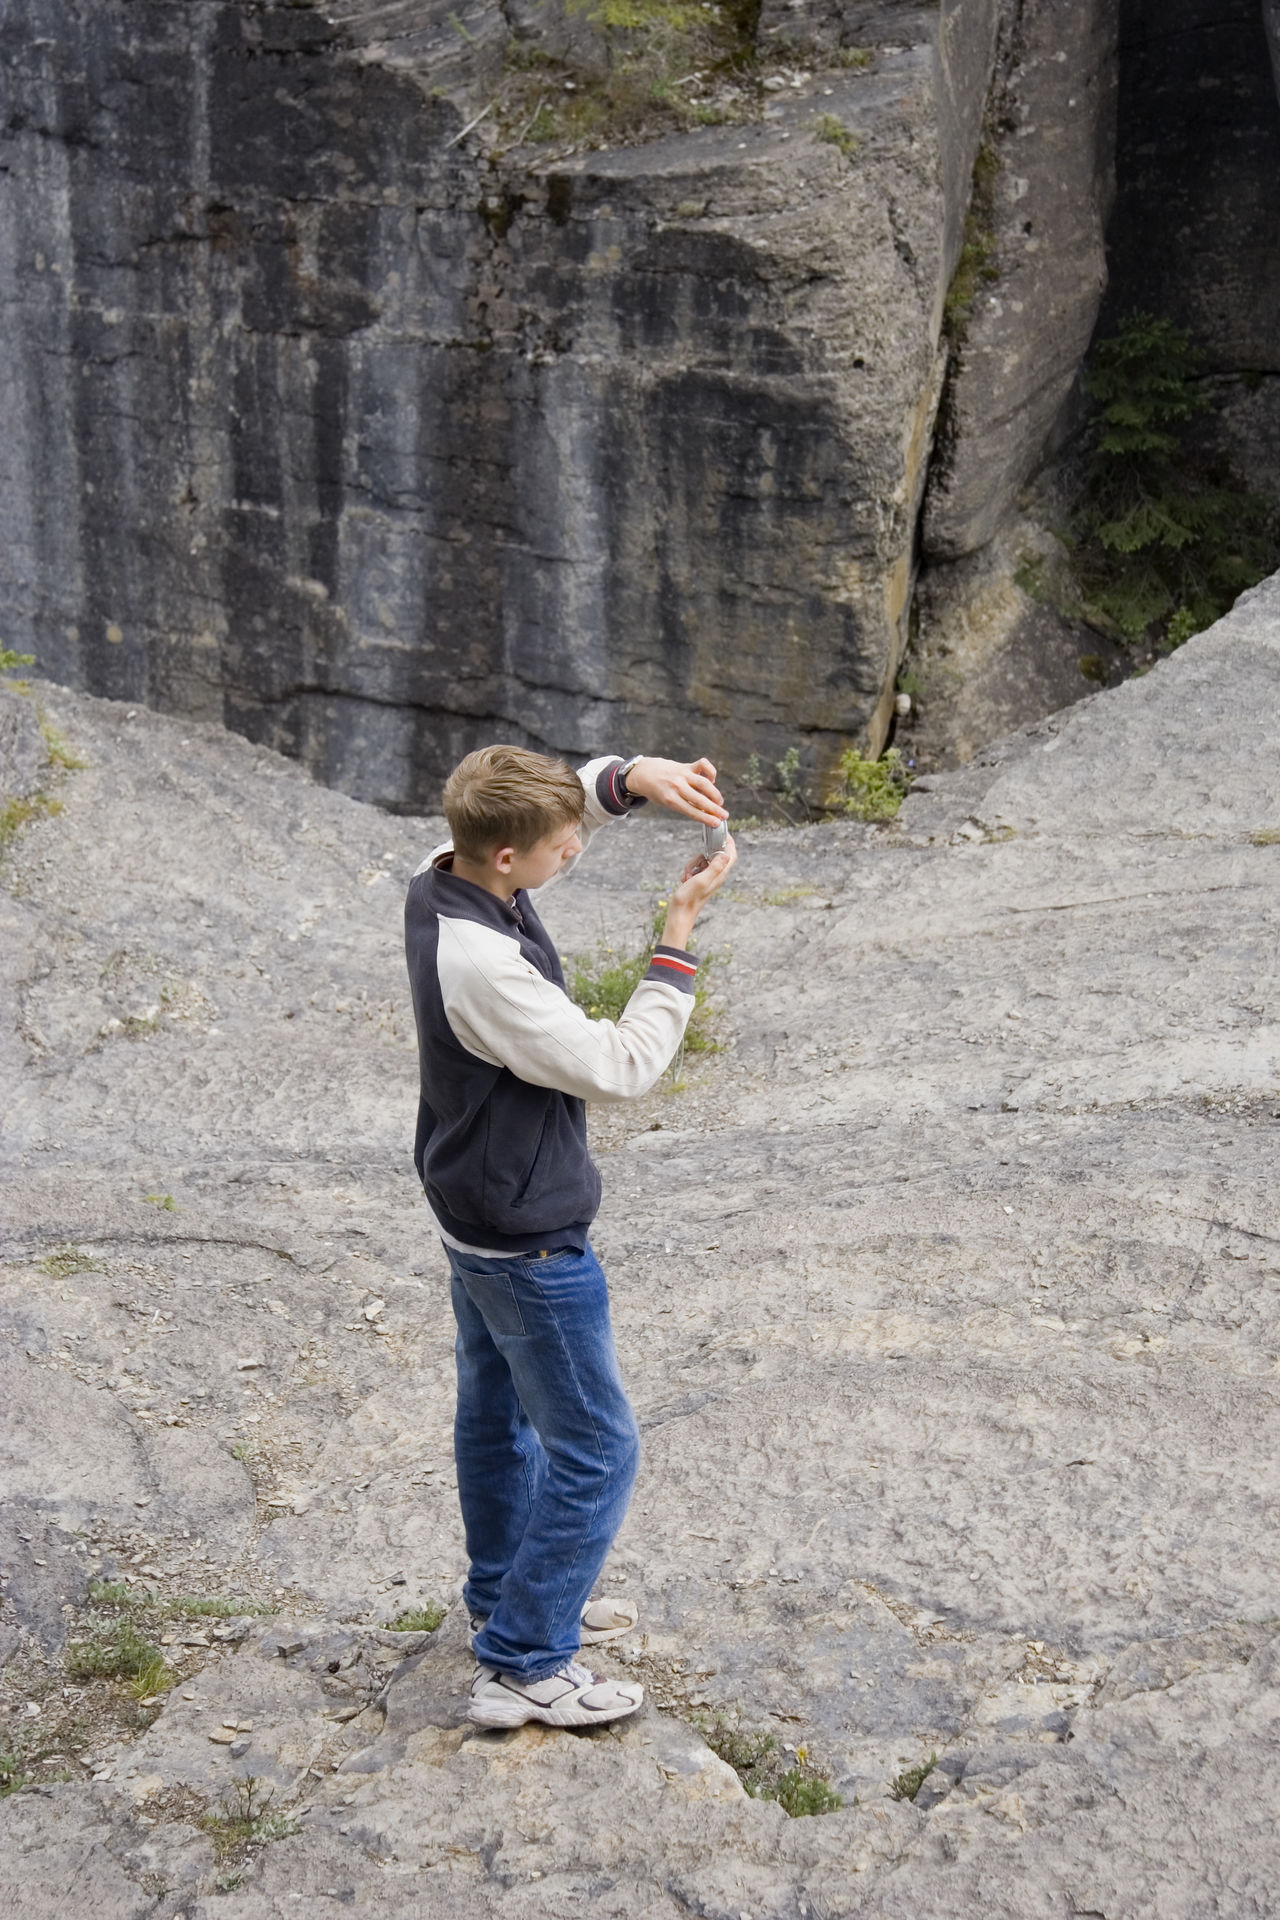 teen taking photos - banff national park, canada Banff National Park  Boy Camera Canada Cliff Creativity Digital Camera Education Exploring Full Length High Angle View Hobbies Holding Mountain One Boy Only One Teenage Boy Only Photographer Real People Rock Standing Taking Photos Taking Pictures Teen Teenage Boy Teenager